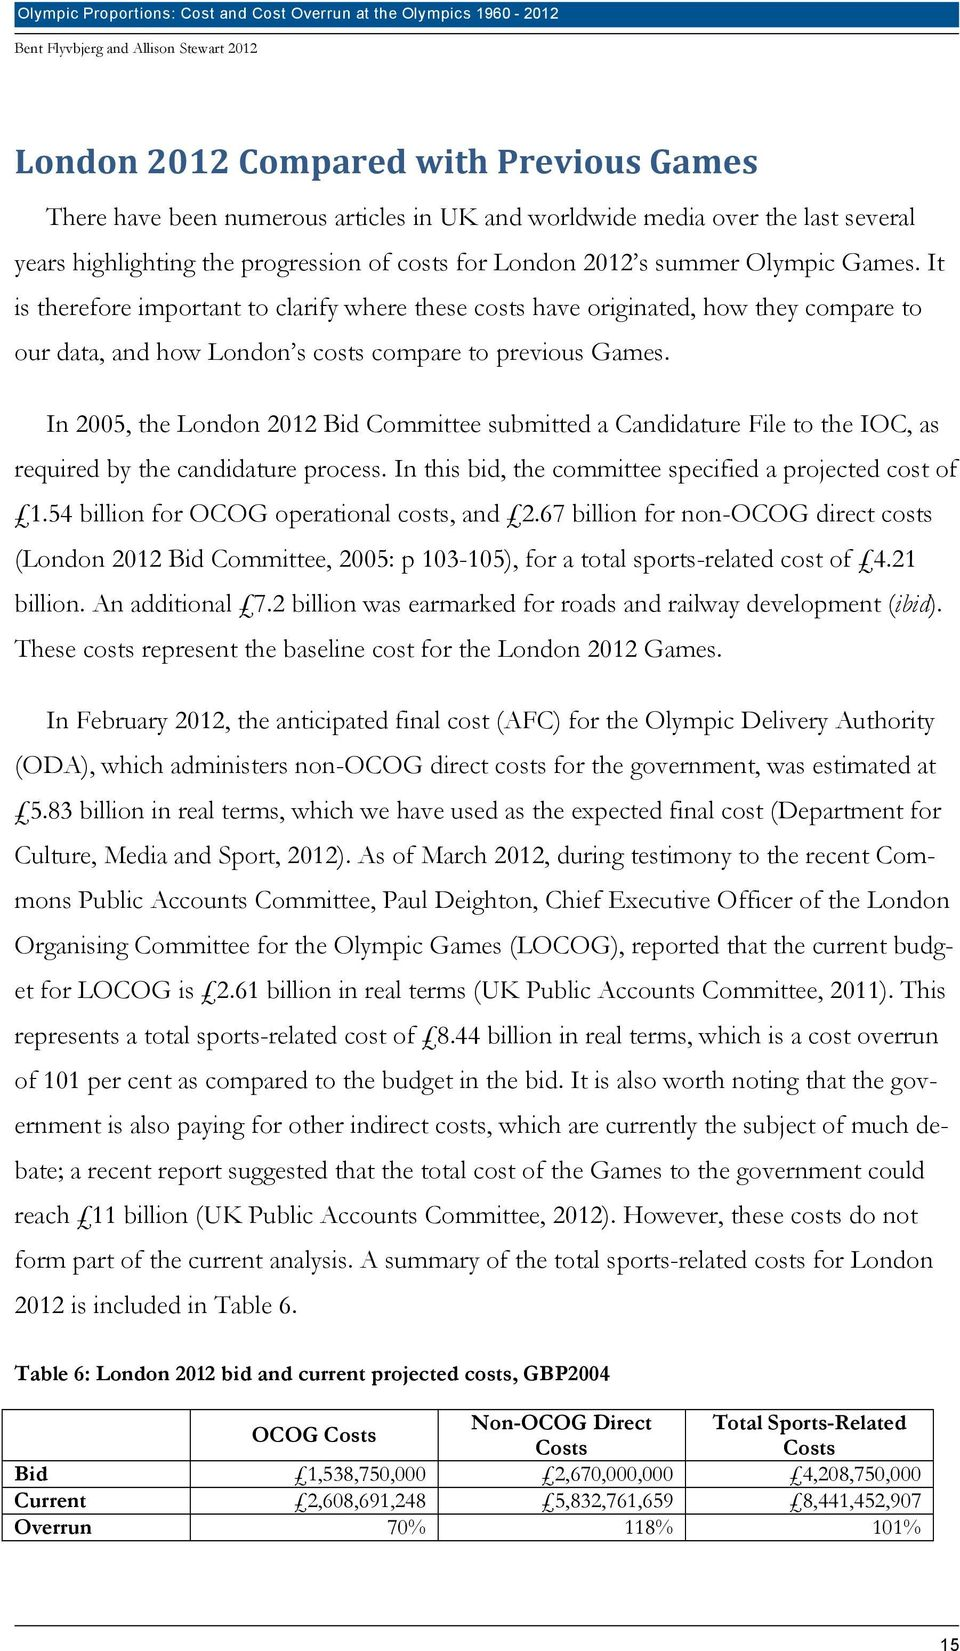 In 2005, the London 2012 Bid Committee submitted a Candidature File to the IOC, as required by the candidature process. In this bid, the committee specified a projected cost of 1.